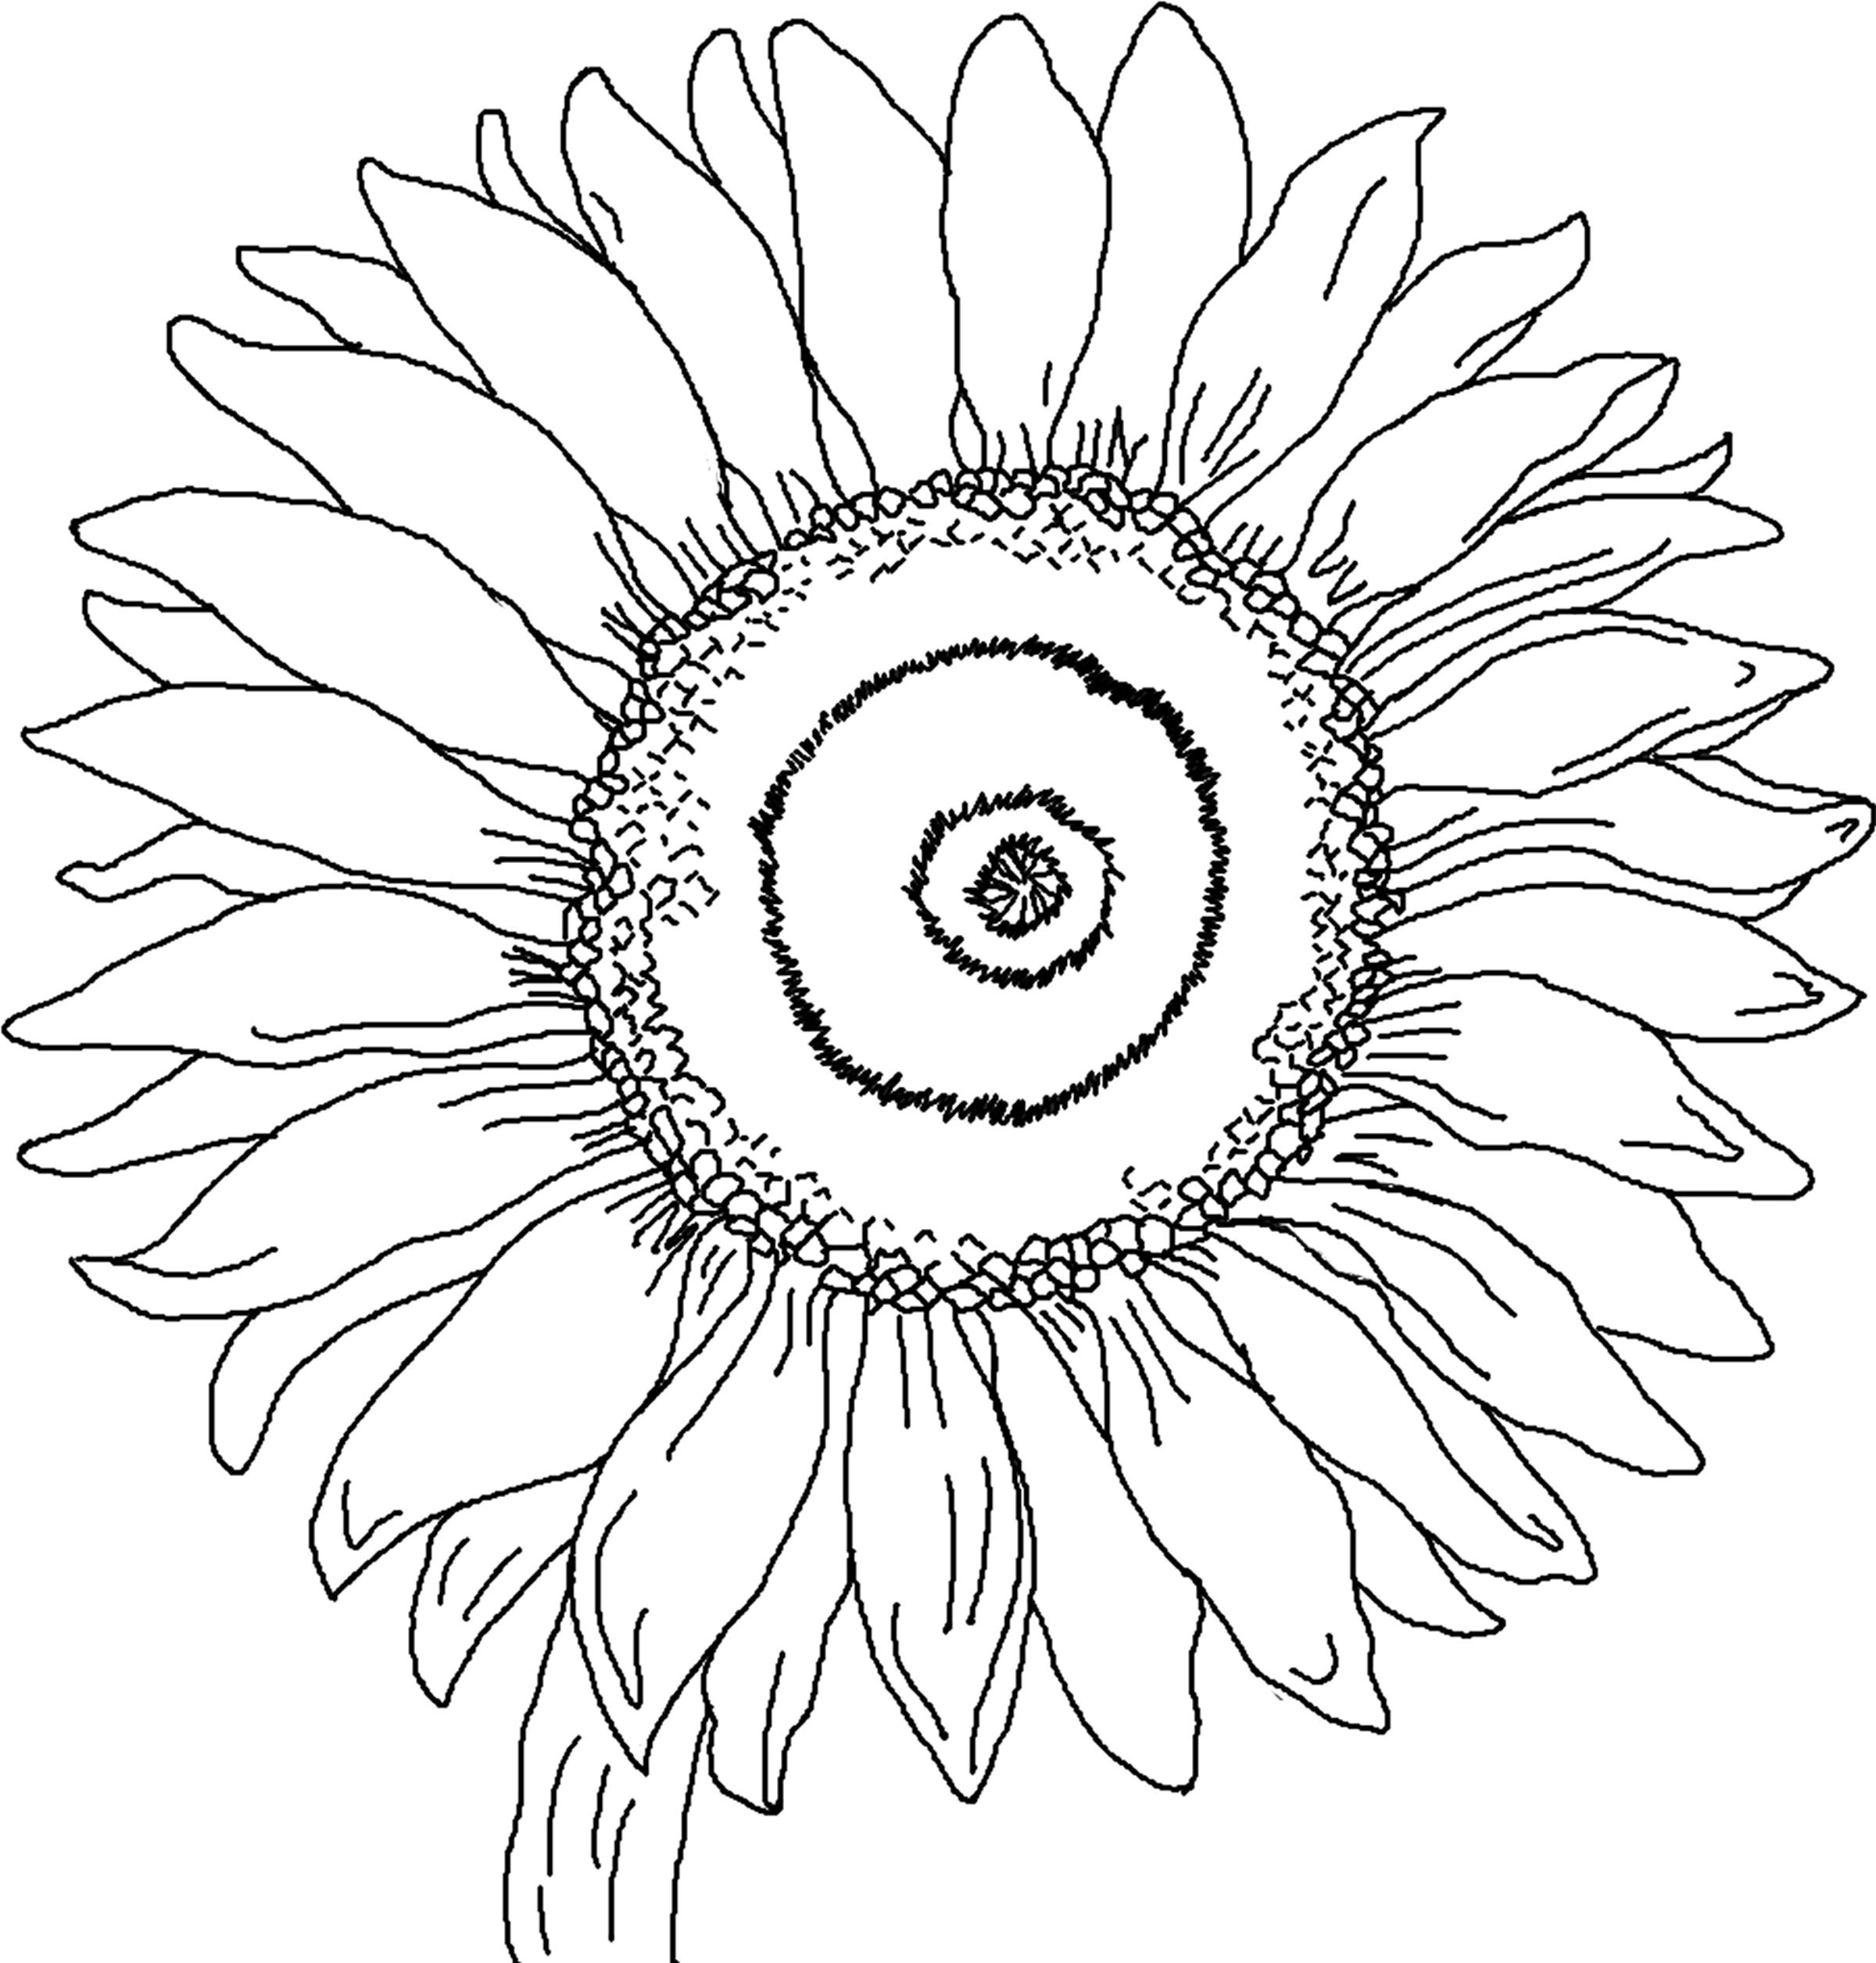 coloring pictures of sunflowers sunflower drawing color at getdrawings free download pictures of sunflowers coloring